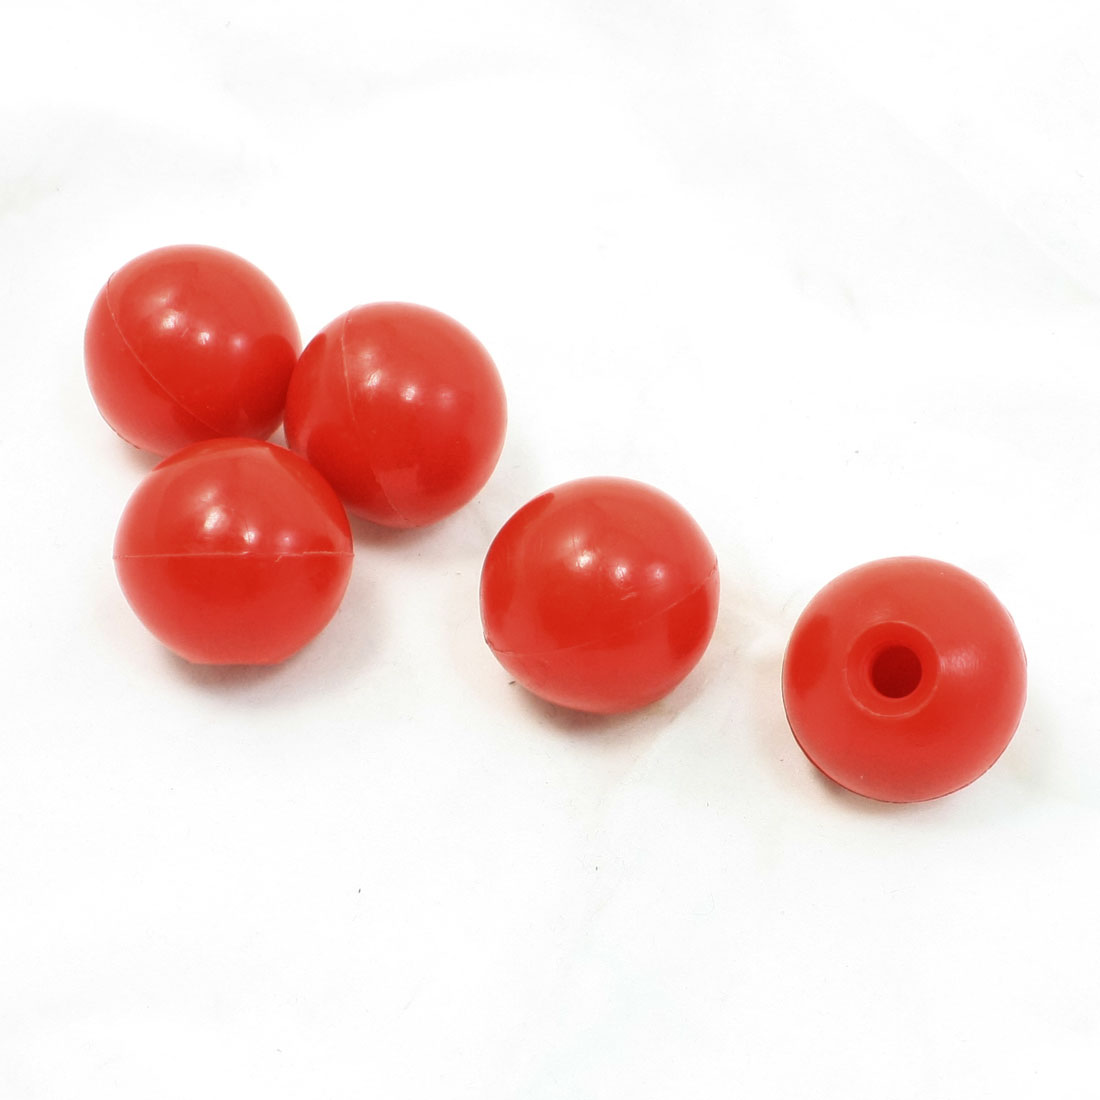 5 x Arcade Game Joystick Machine Handle Ball Knob Red 32mm Dia M8 Thread